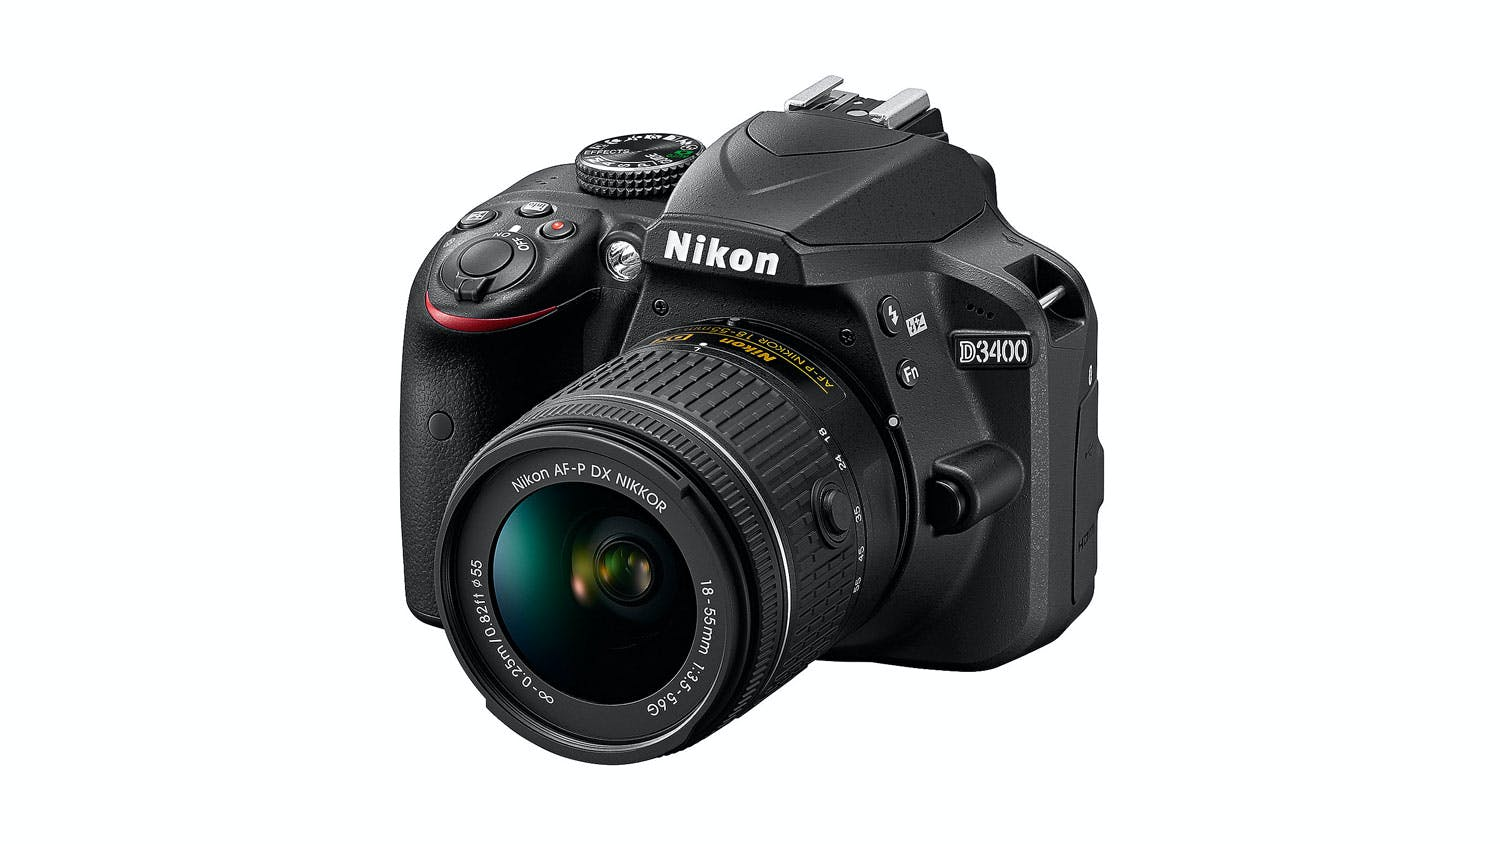 Nikon D3400 Digital Slr With A 18 55mm Lens Kit Harvey Norman New Cleaning 7 In 1 Zealand